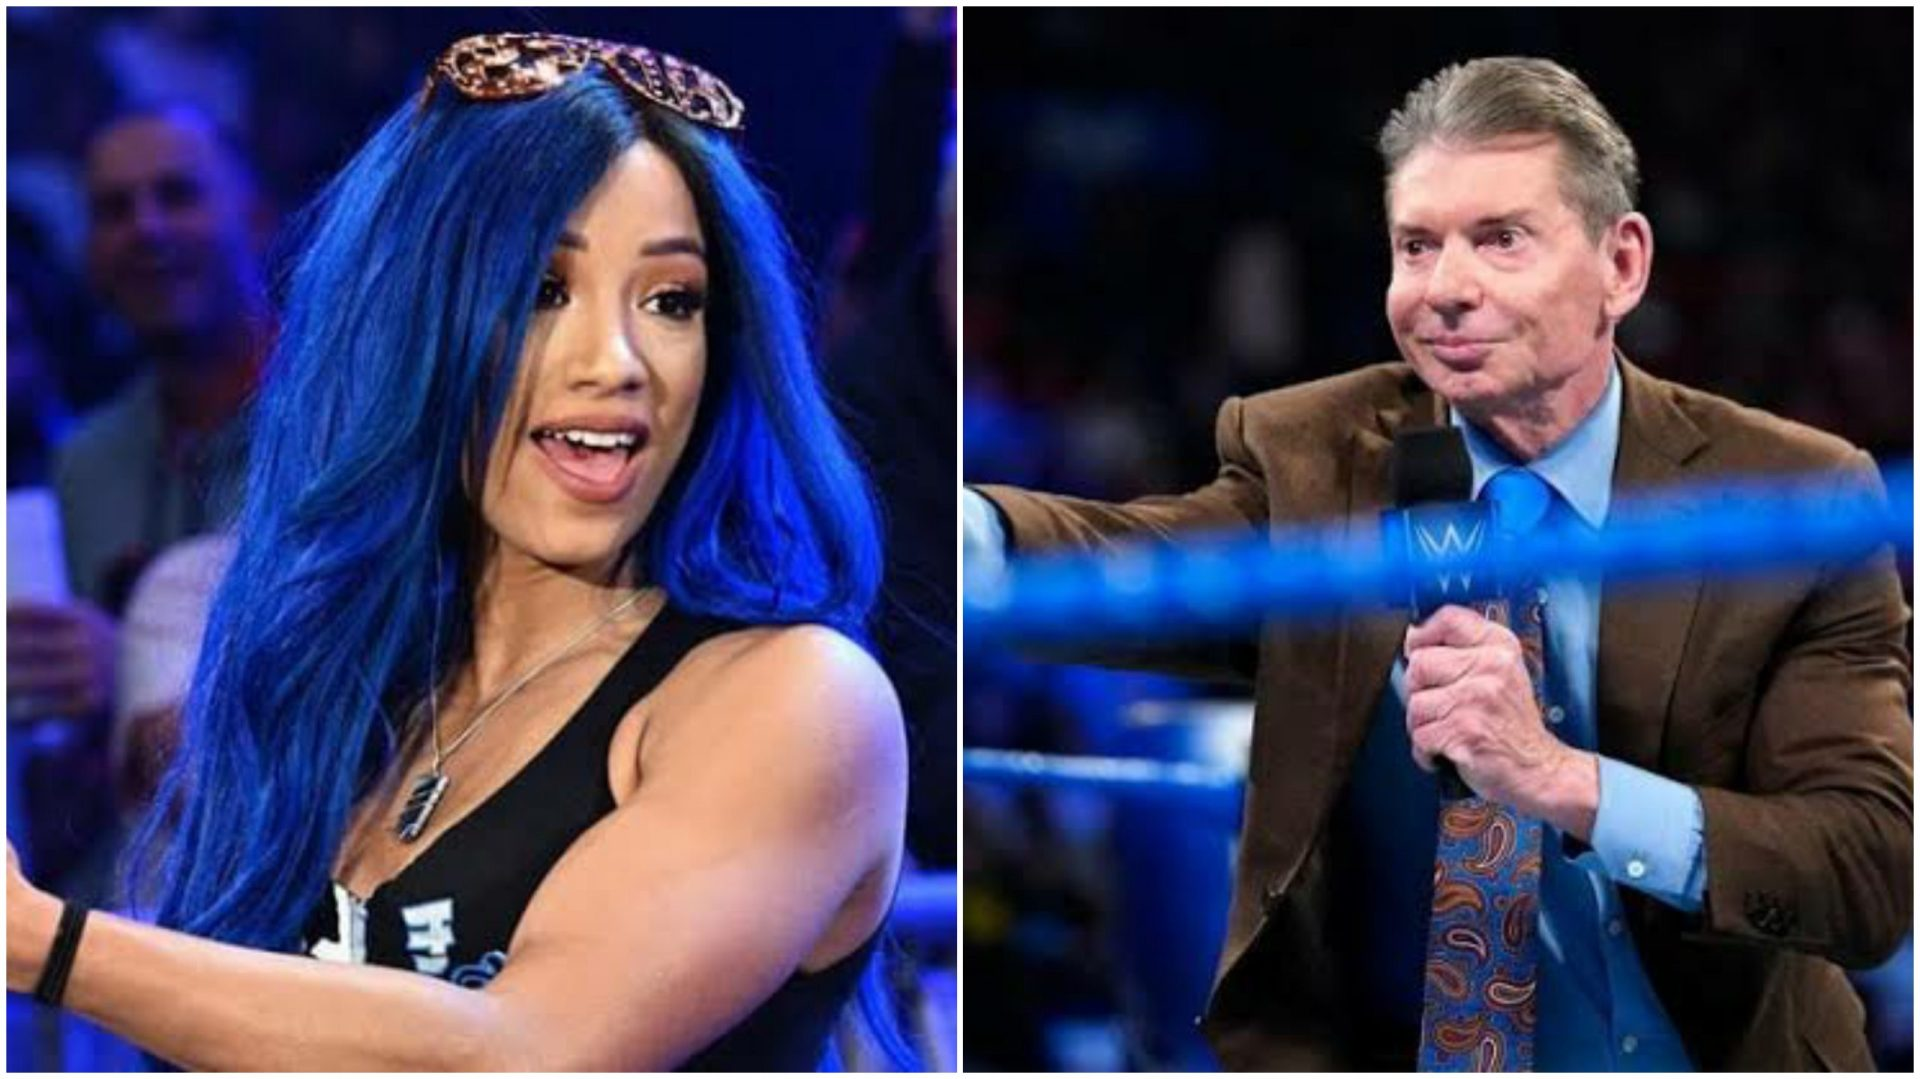 Vince McMahon to scout talent, Sasha Banks to train at WWE Performance Center - THE SPORTS ROOM